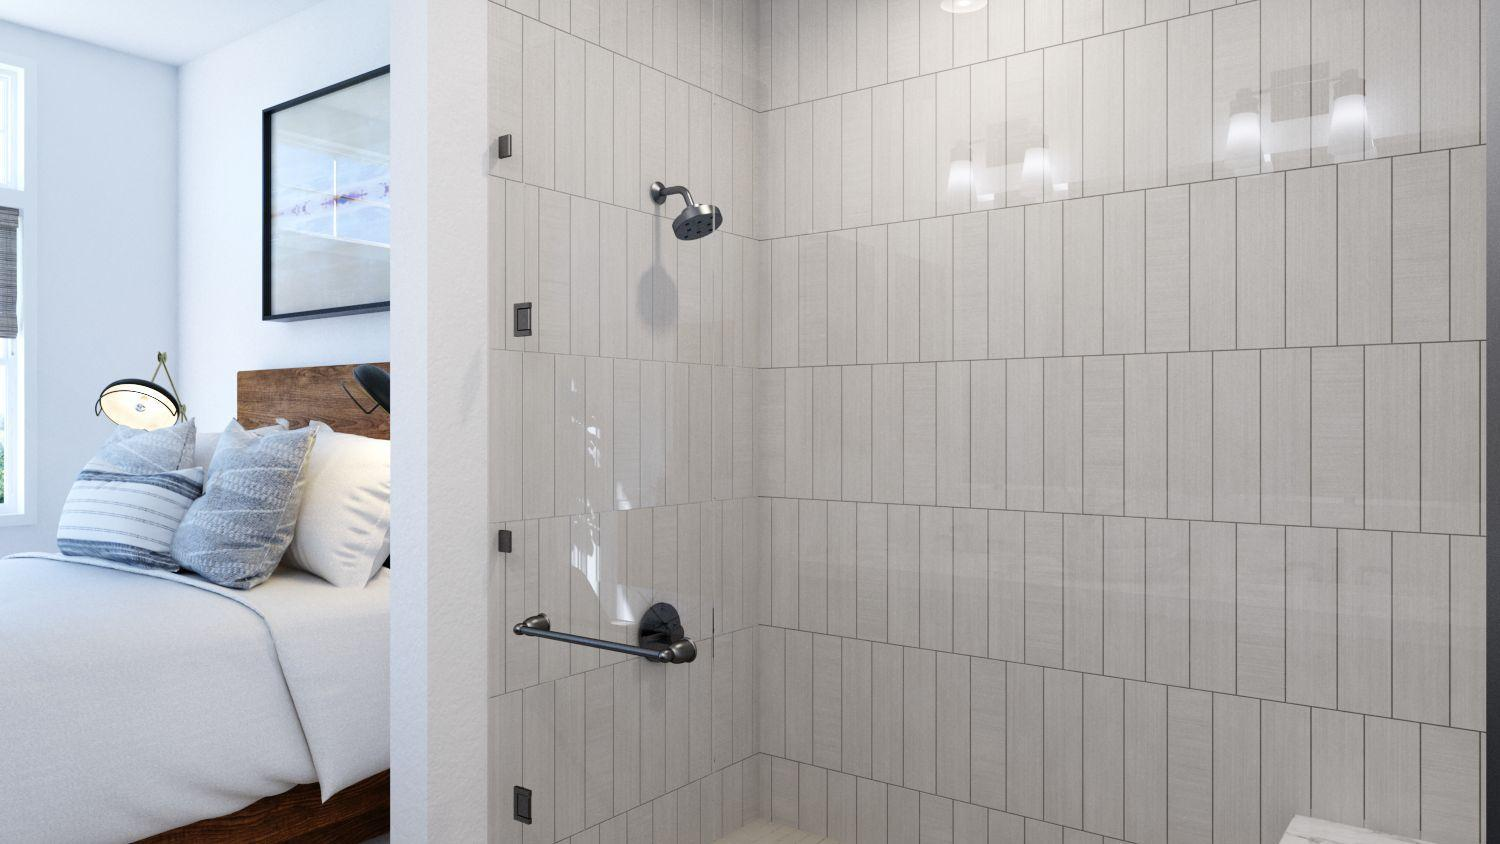 Bathroom featured in the Newport Residence 2 By Trumark Homes in Oakland-Alameda, CA